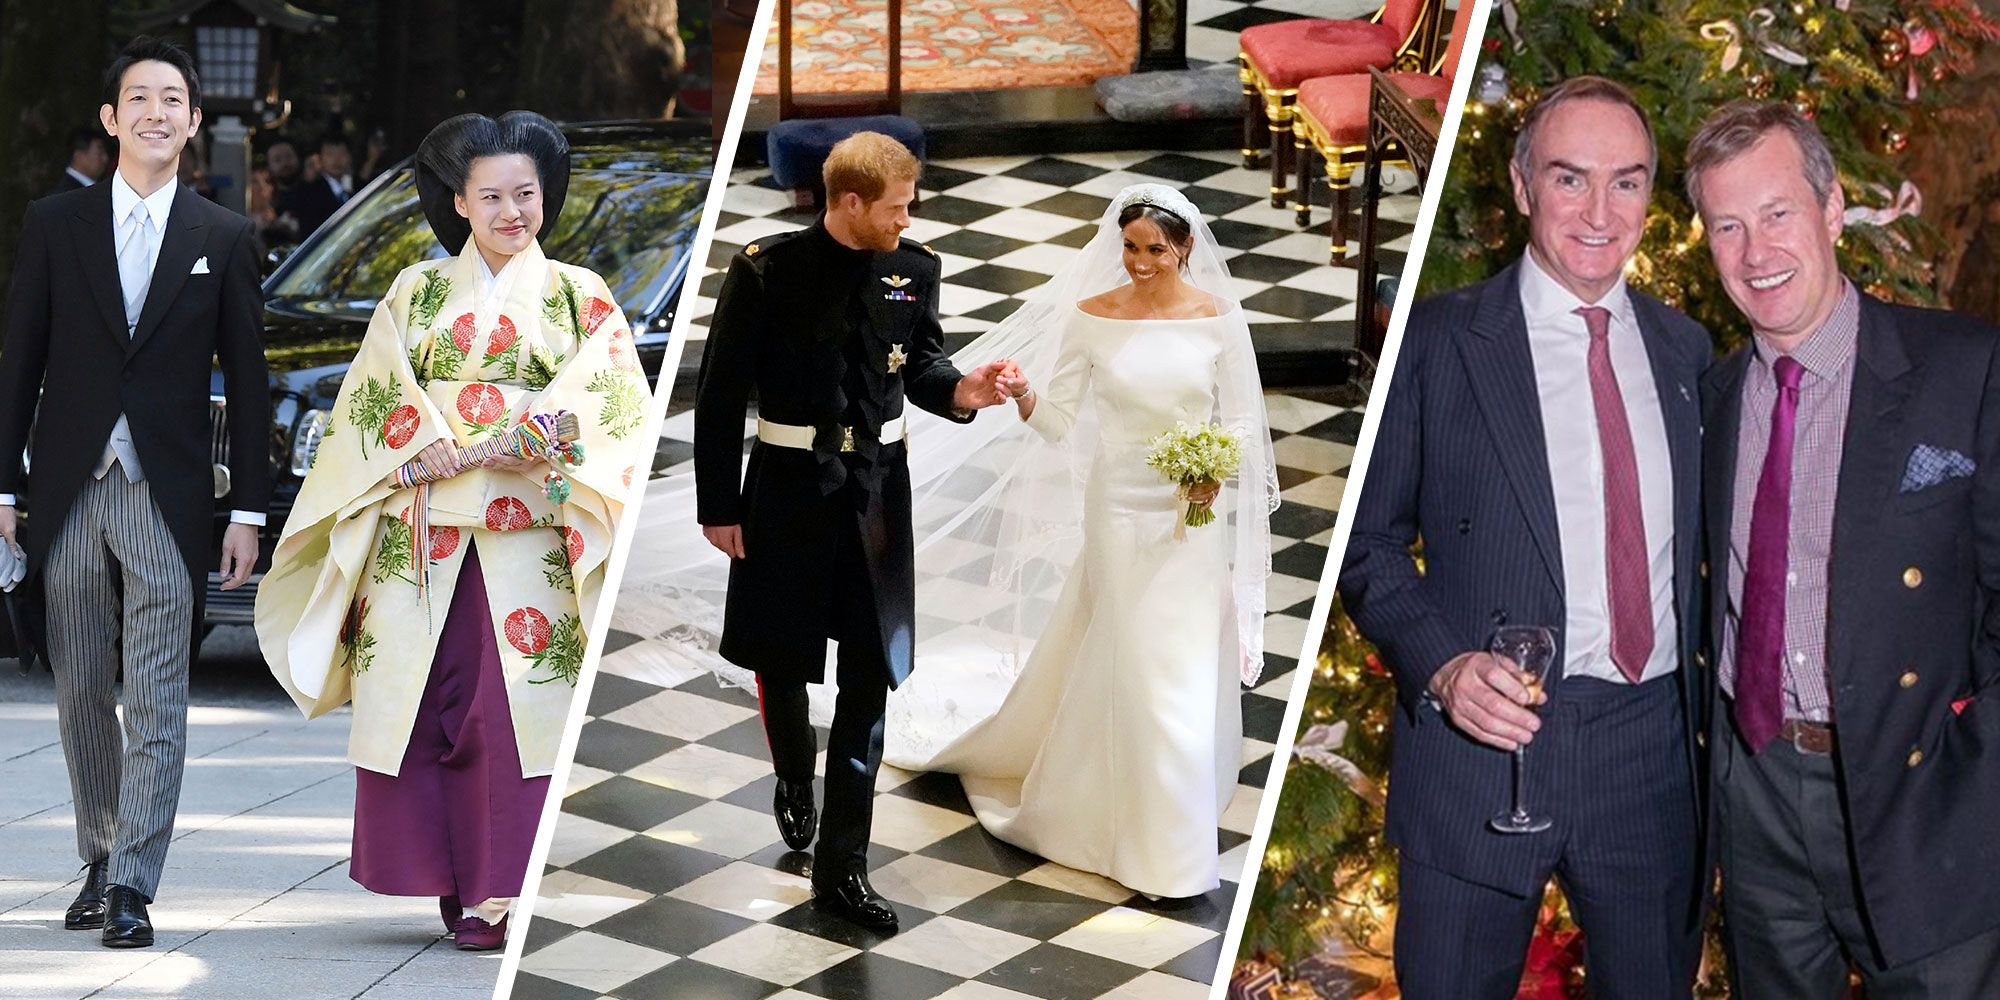 This was a banner year for weddings, boasting not one, but two royal affairs. But Meghan Markle and Princess Eugenie weren't the only buzz-generating brides of the year, nor were their respective nuptials the only buzzy affairs—there were a many top notch secret ceremonies too, for example Tory Burch and Pierre-Yves Roussel and Barbara Pierce Bush and Craig Coyne.